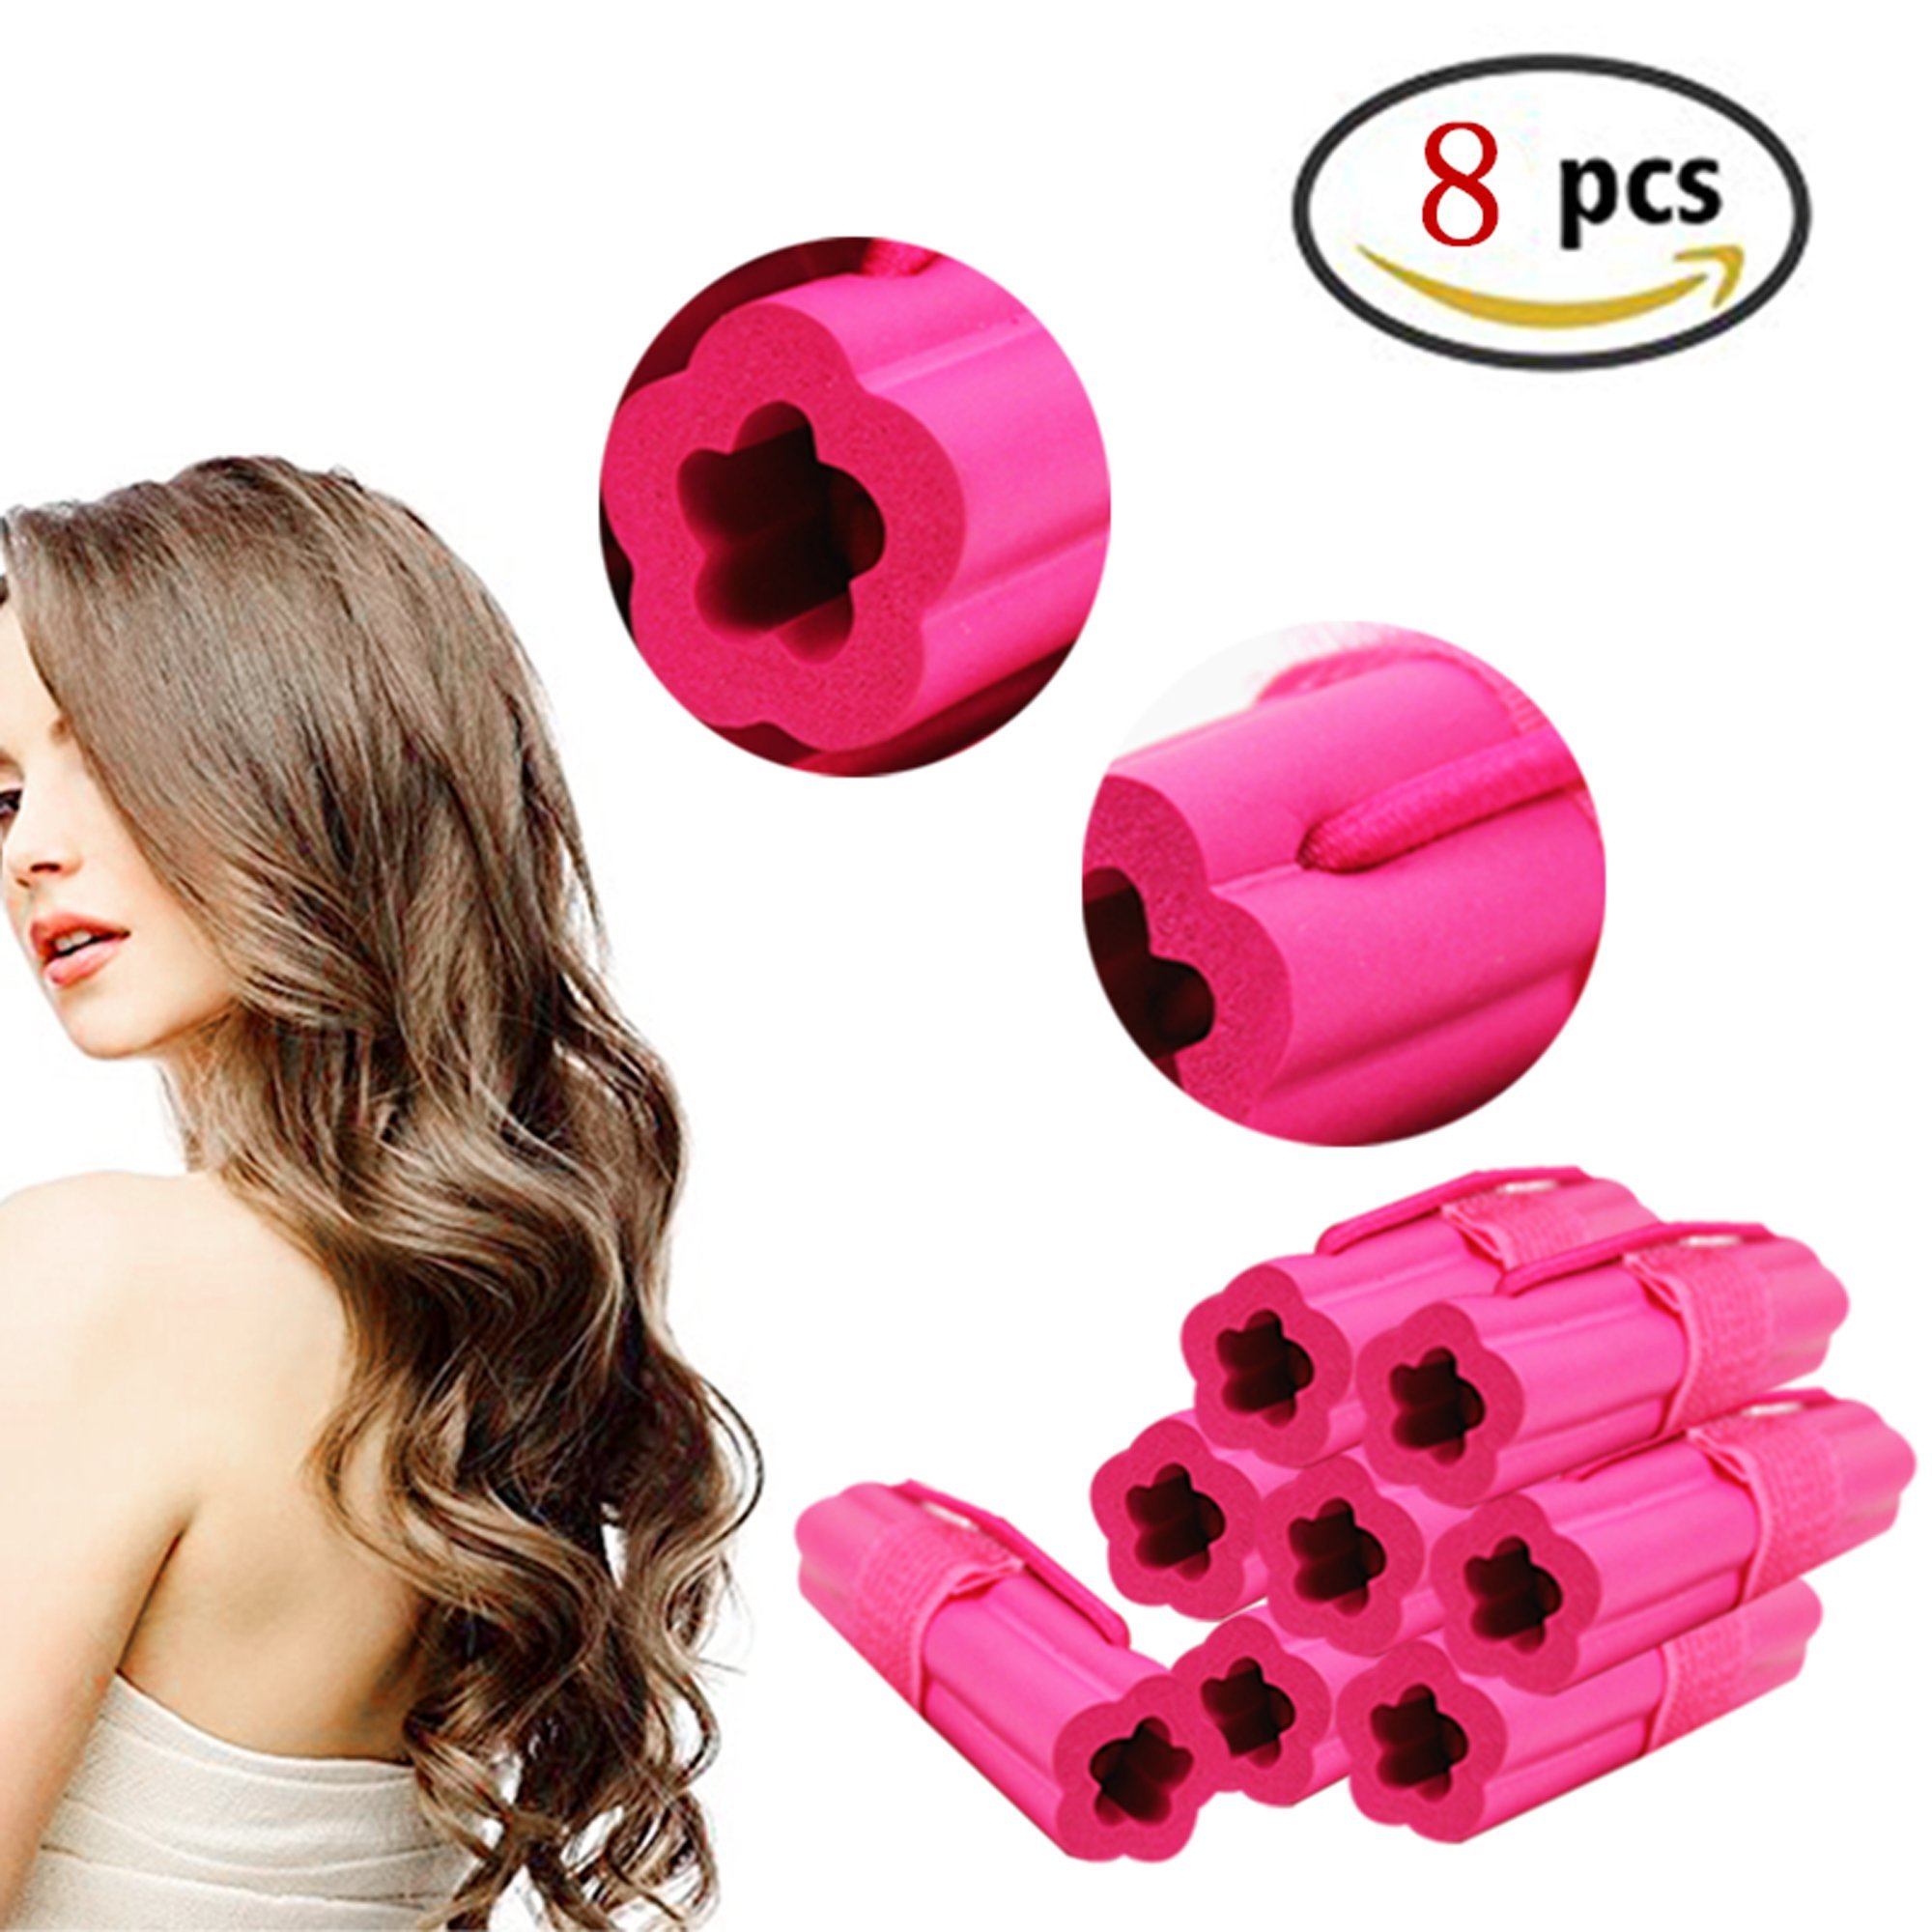 Heated hair rollers: customer reviews. Therming hair Remington: reviews 78